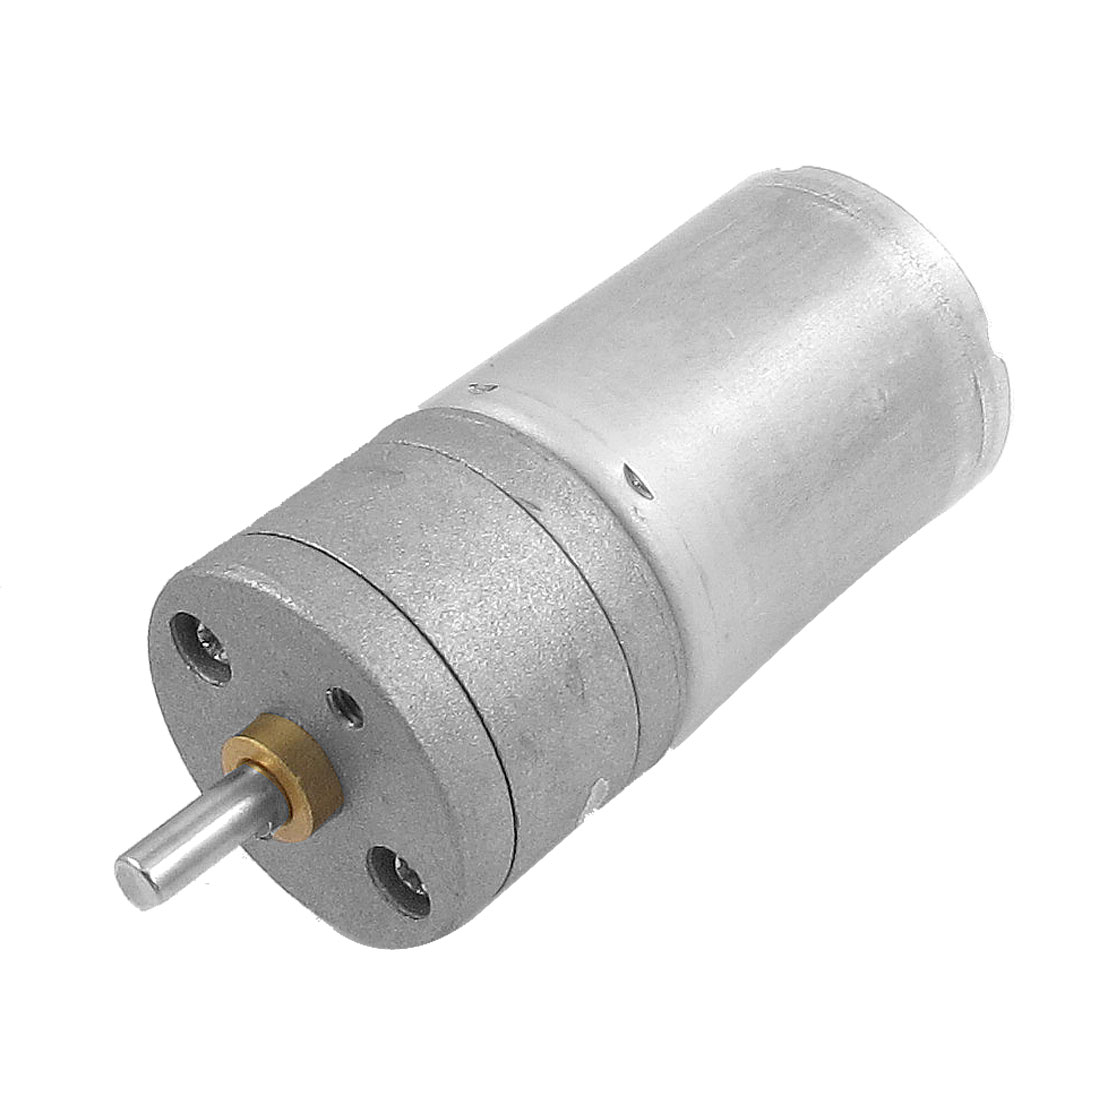 25mm Dia 40RPM Output Speed 6V DC Geared Speed Reduce Motor